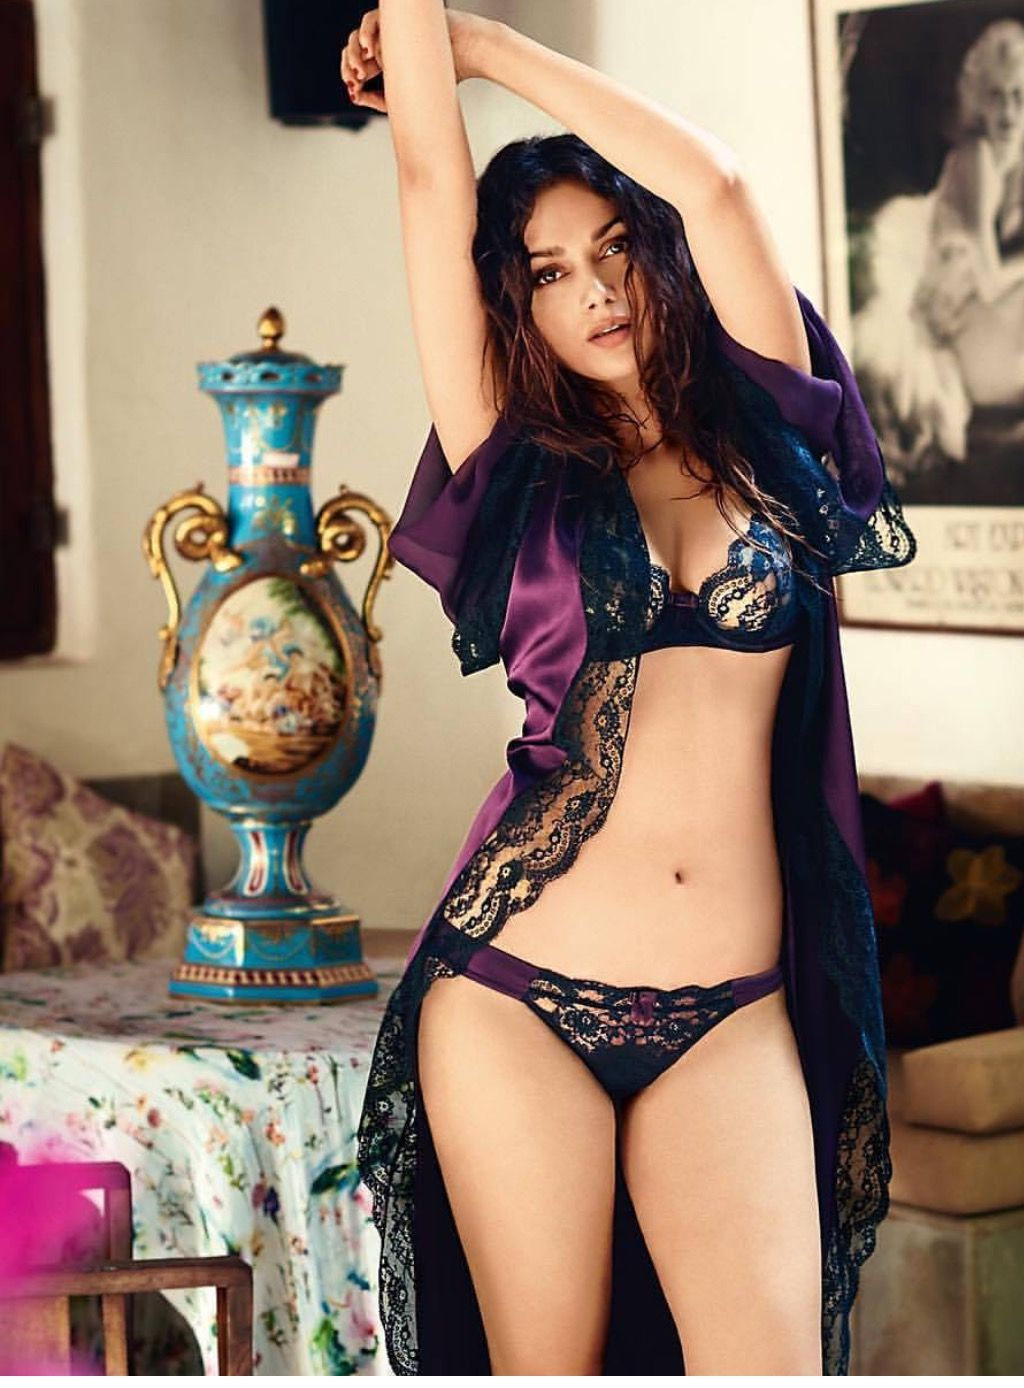 Indian Babe In Sexy Lingerie In Bedroom